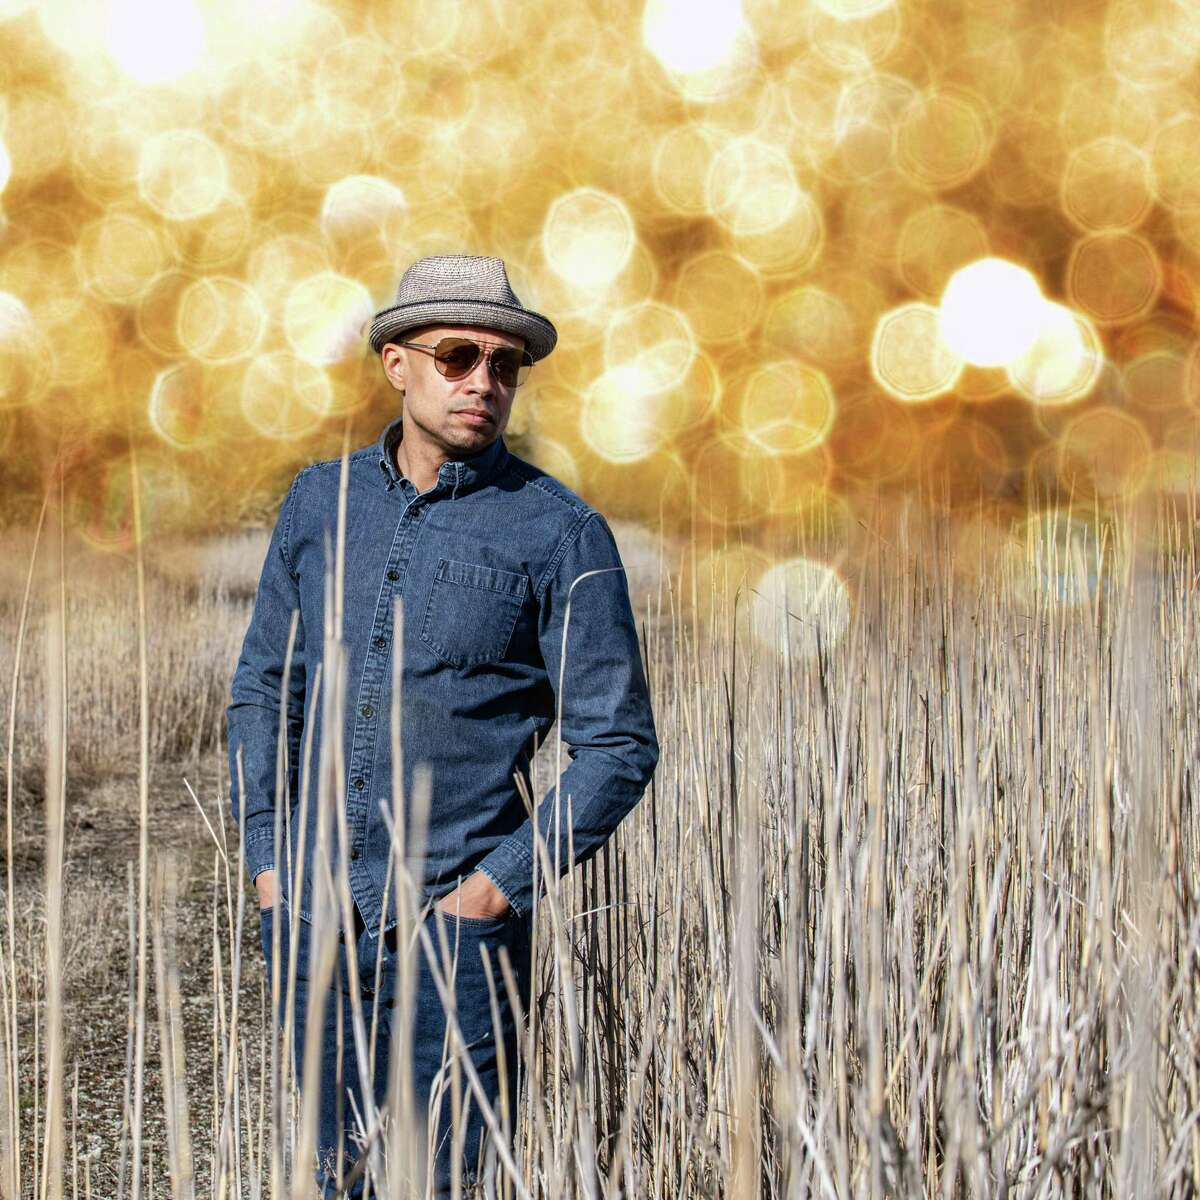 New Haven musician Ionne tackles social issues in his music.